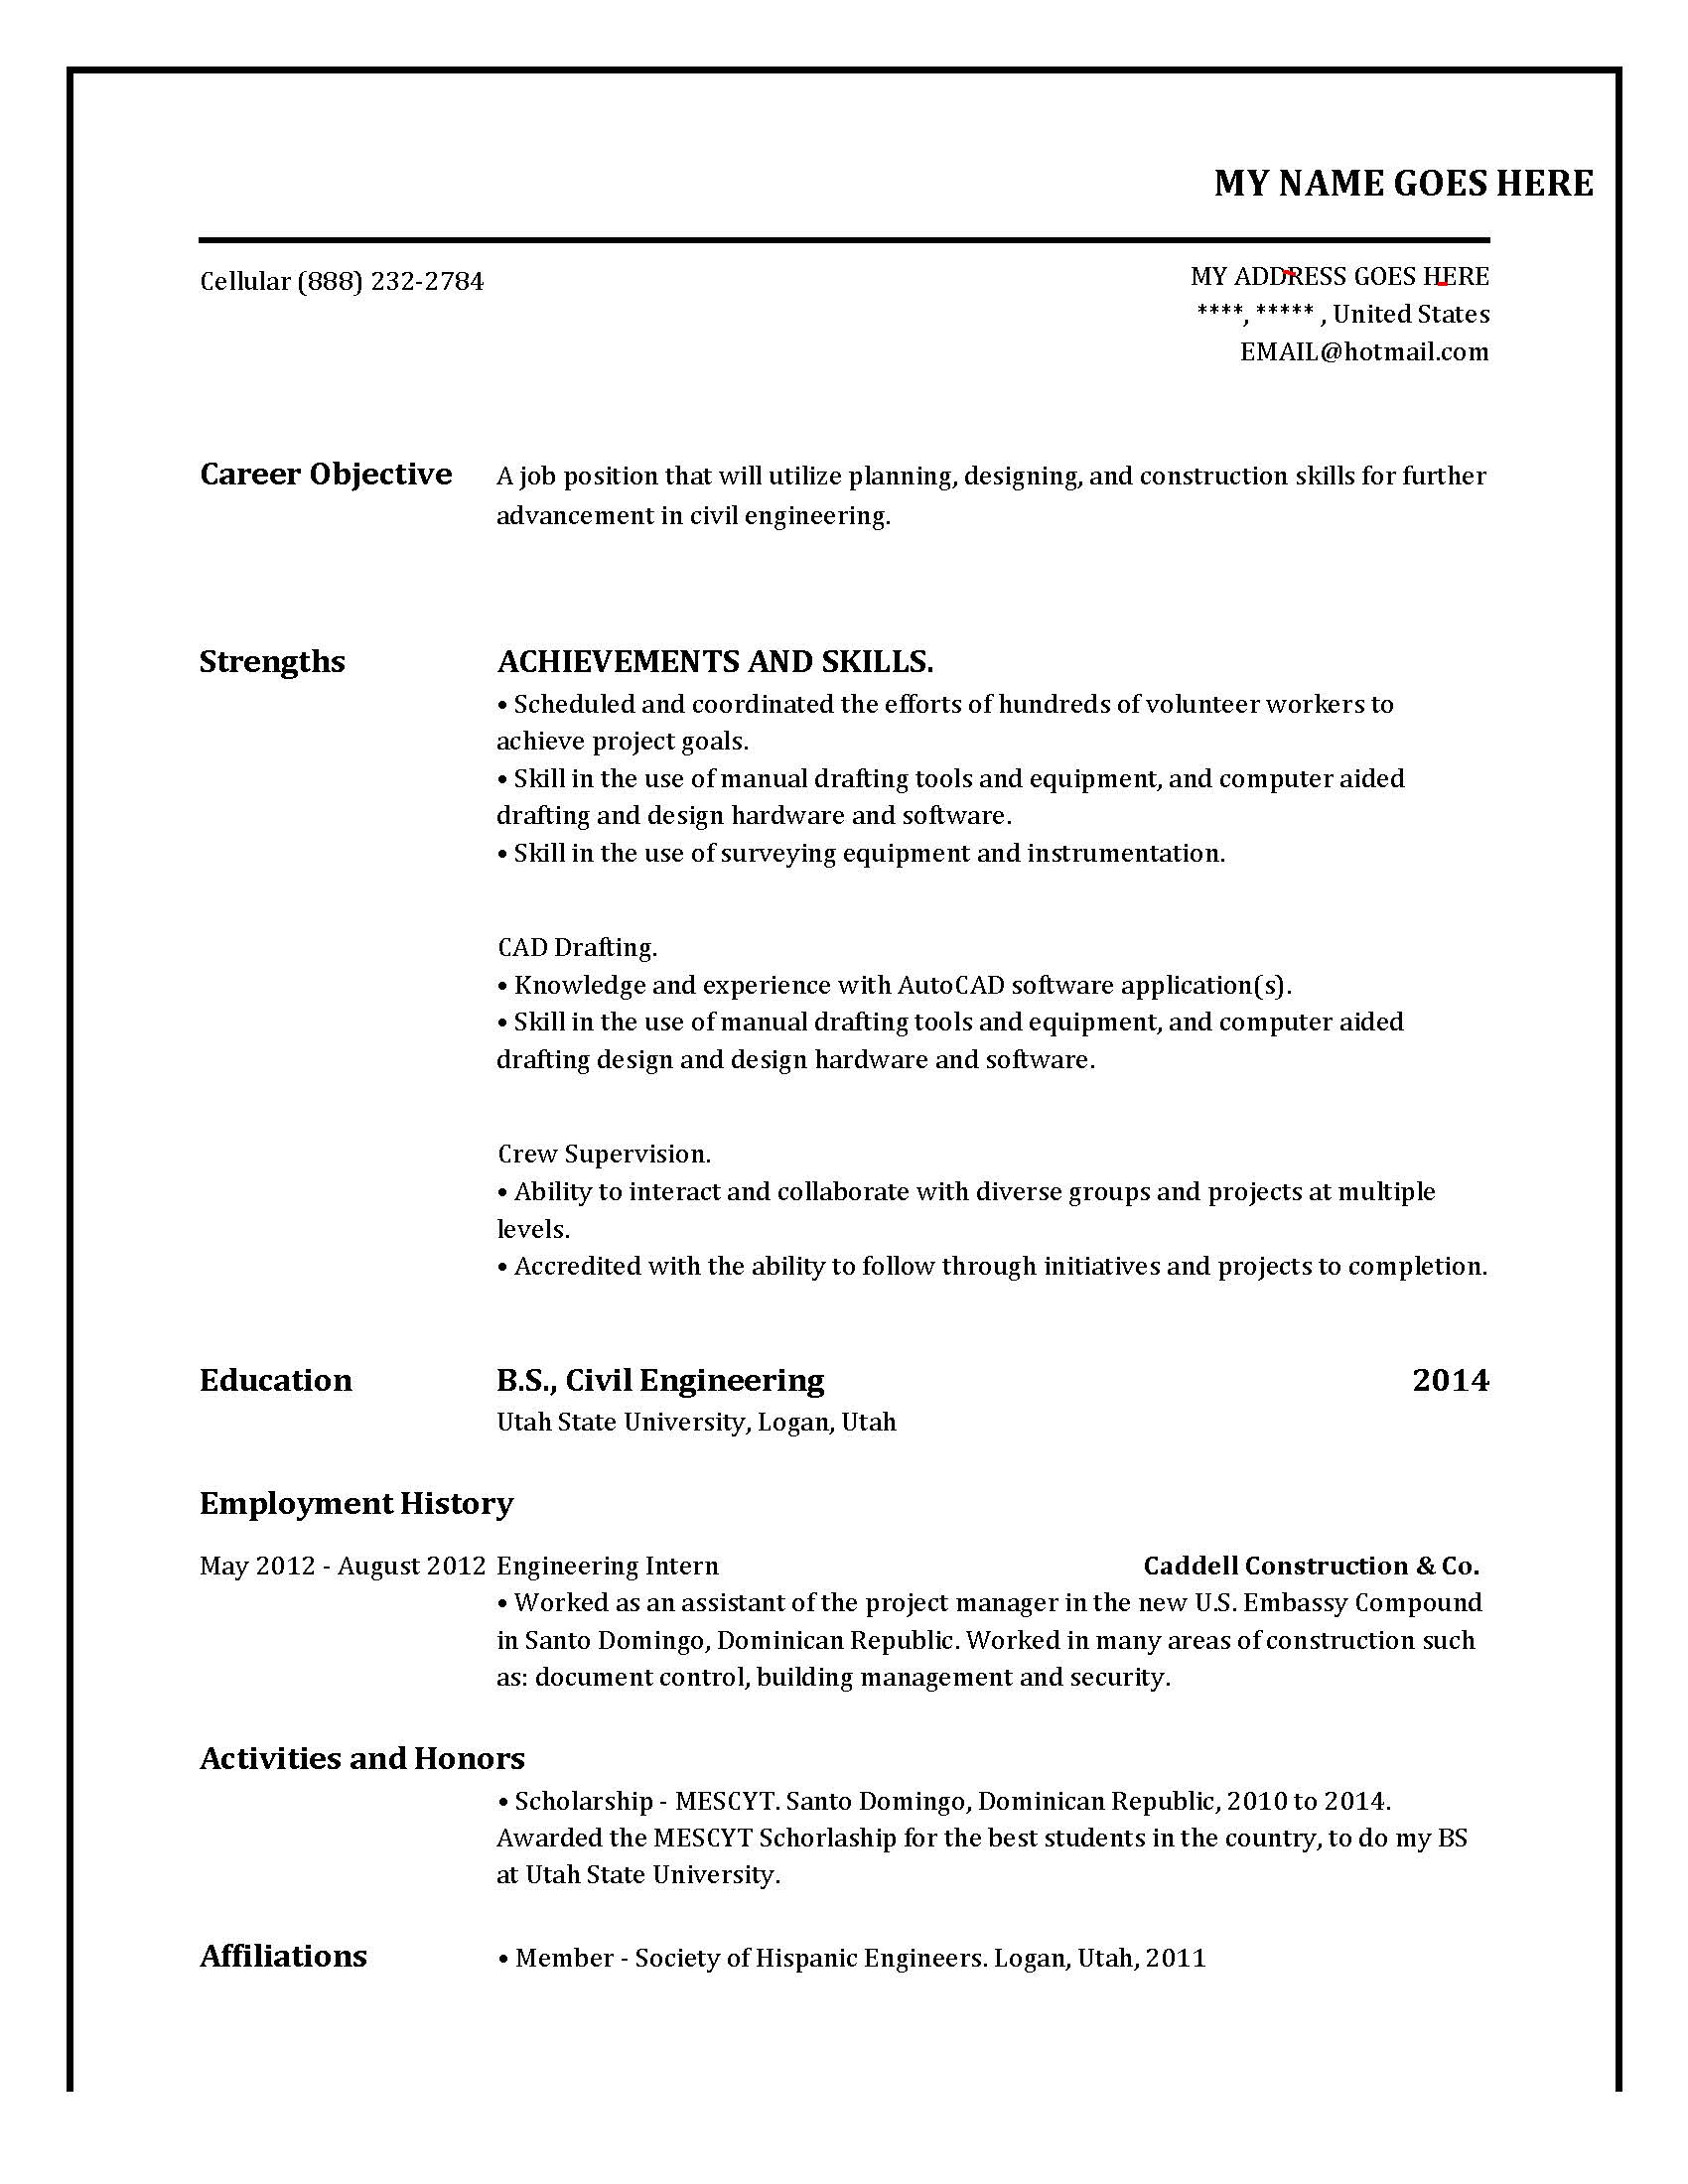 Help Me Build A Resume For Free,Help Me Make It Through the Night ...